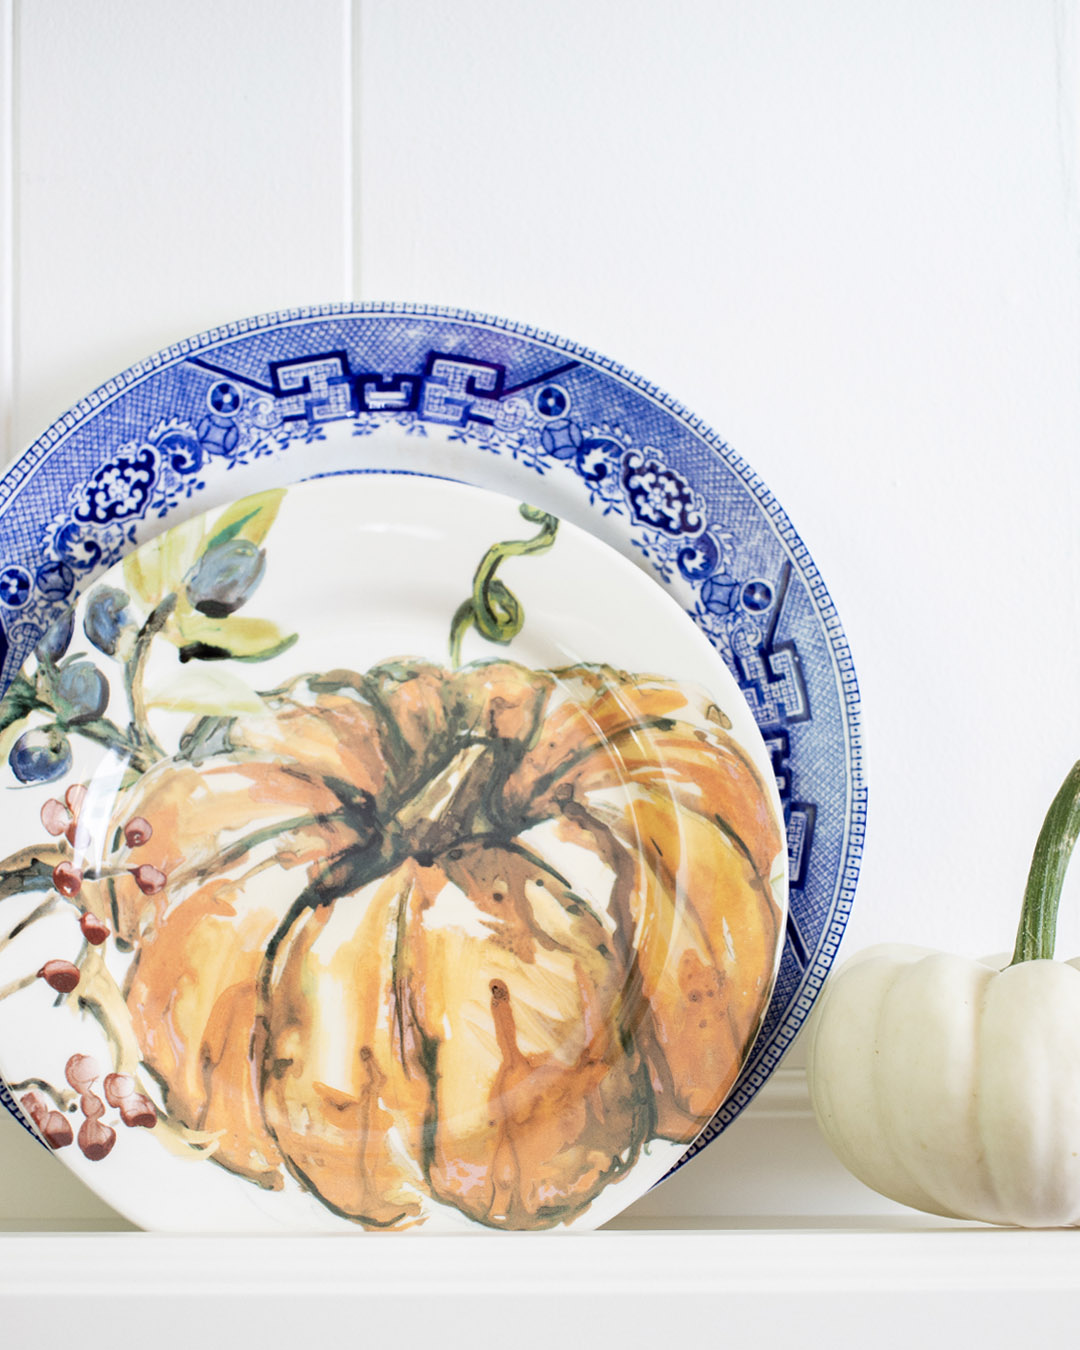 Today I'm sharing one of my favourite little traditions around the house: Switching up my plate wall in the dining room for each new season. Here's my fall plate wall for this year!